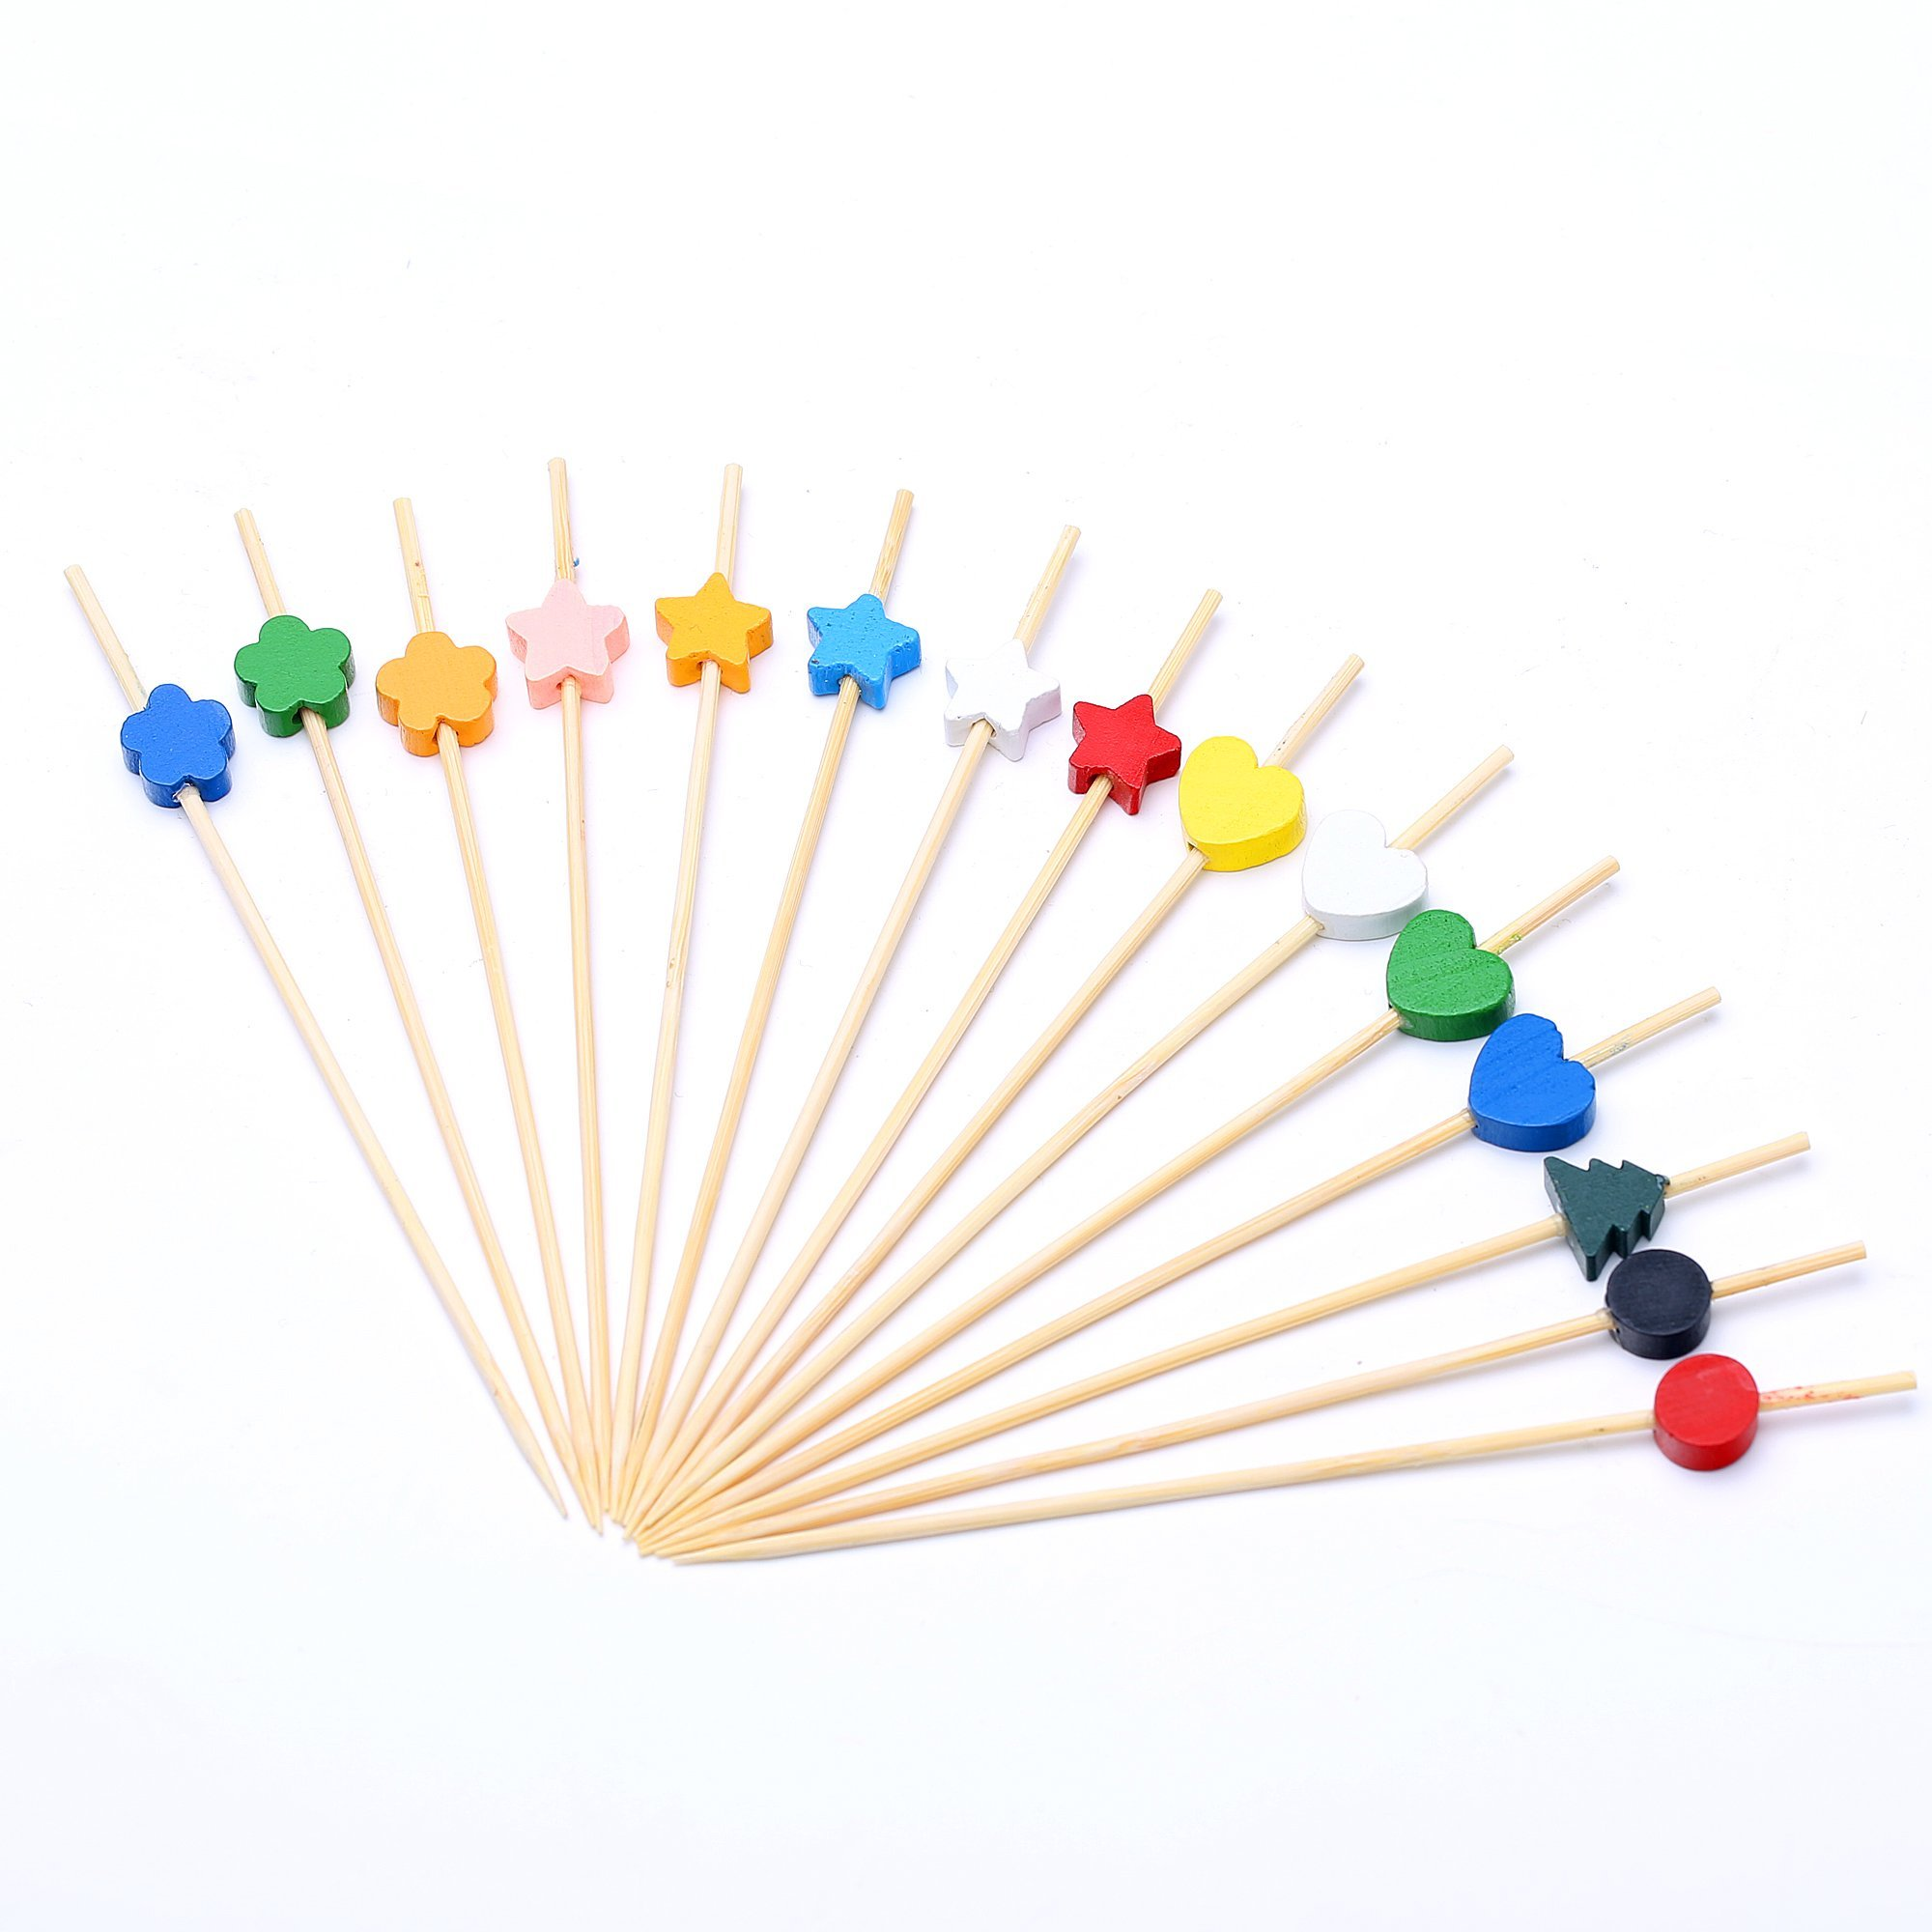 Cocktail Picks 4.7'' Handmade Assorted Color and Shape Appetizer Bamboo Toothpicks 200 Counts Cocktail Sticks Party Suppiles by VC-HOME